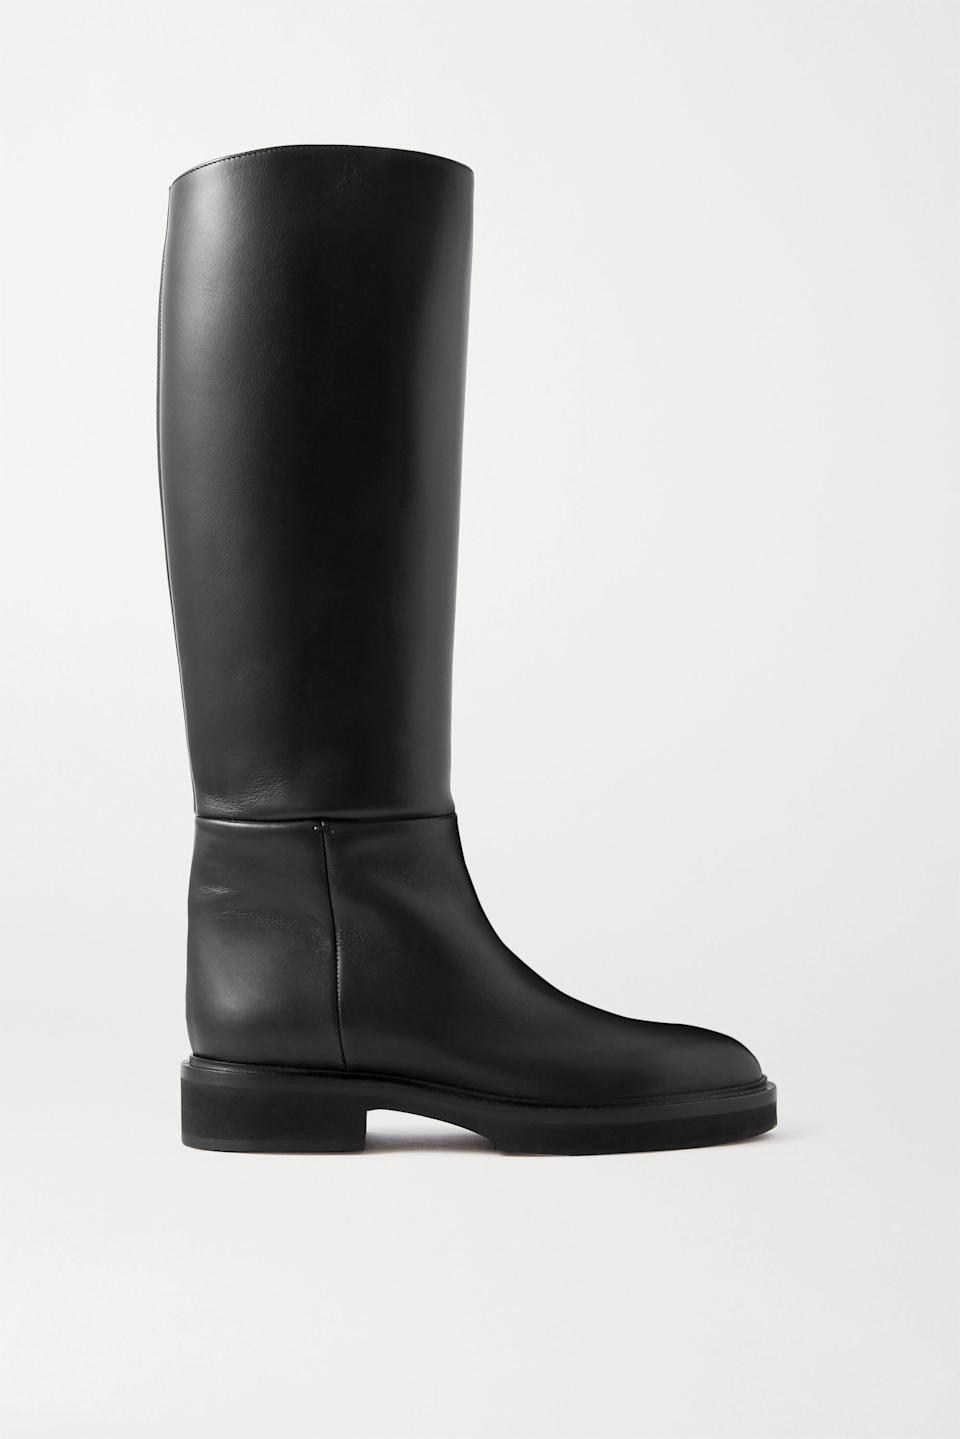 """<br><br><strong>Khaite</strong> Derby Leather Knee Boots, $, available at <a href=""""https://go.skimresources.com/?id=30283X879131&url=https%3A%2F%2Fwww.net-a-porter.com%2Fen-us%2Fshop%2Fproduct%2Fkhaite%2Fderby-leather-knee-boots%2F1252475"""" rel=""""nofollow noopener"""" target=""""_blank"""" data-ylk=""""slk:Net-A-Porter"""" class=""""link rapid-noclick-resp"""">Net-A-Porter</a>"""